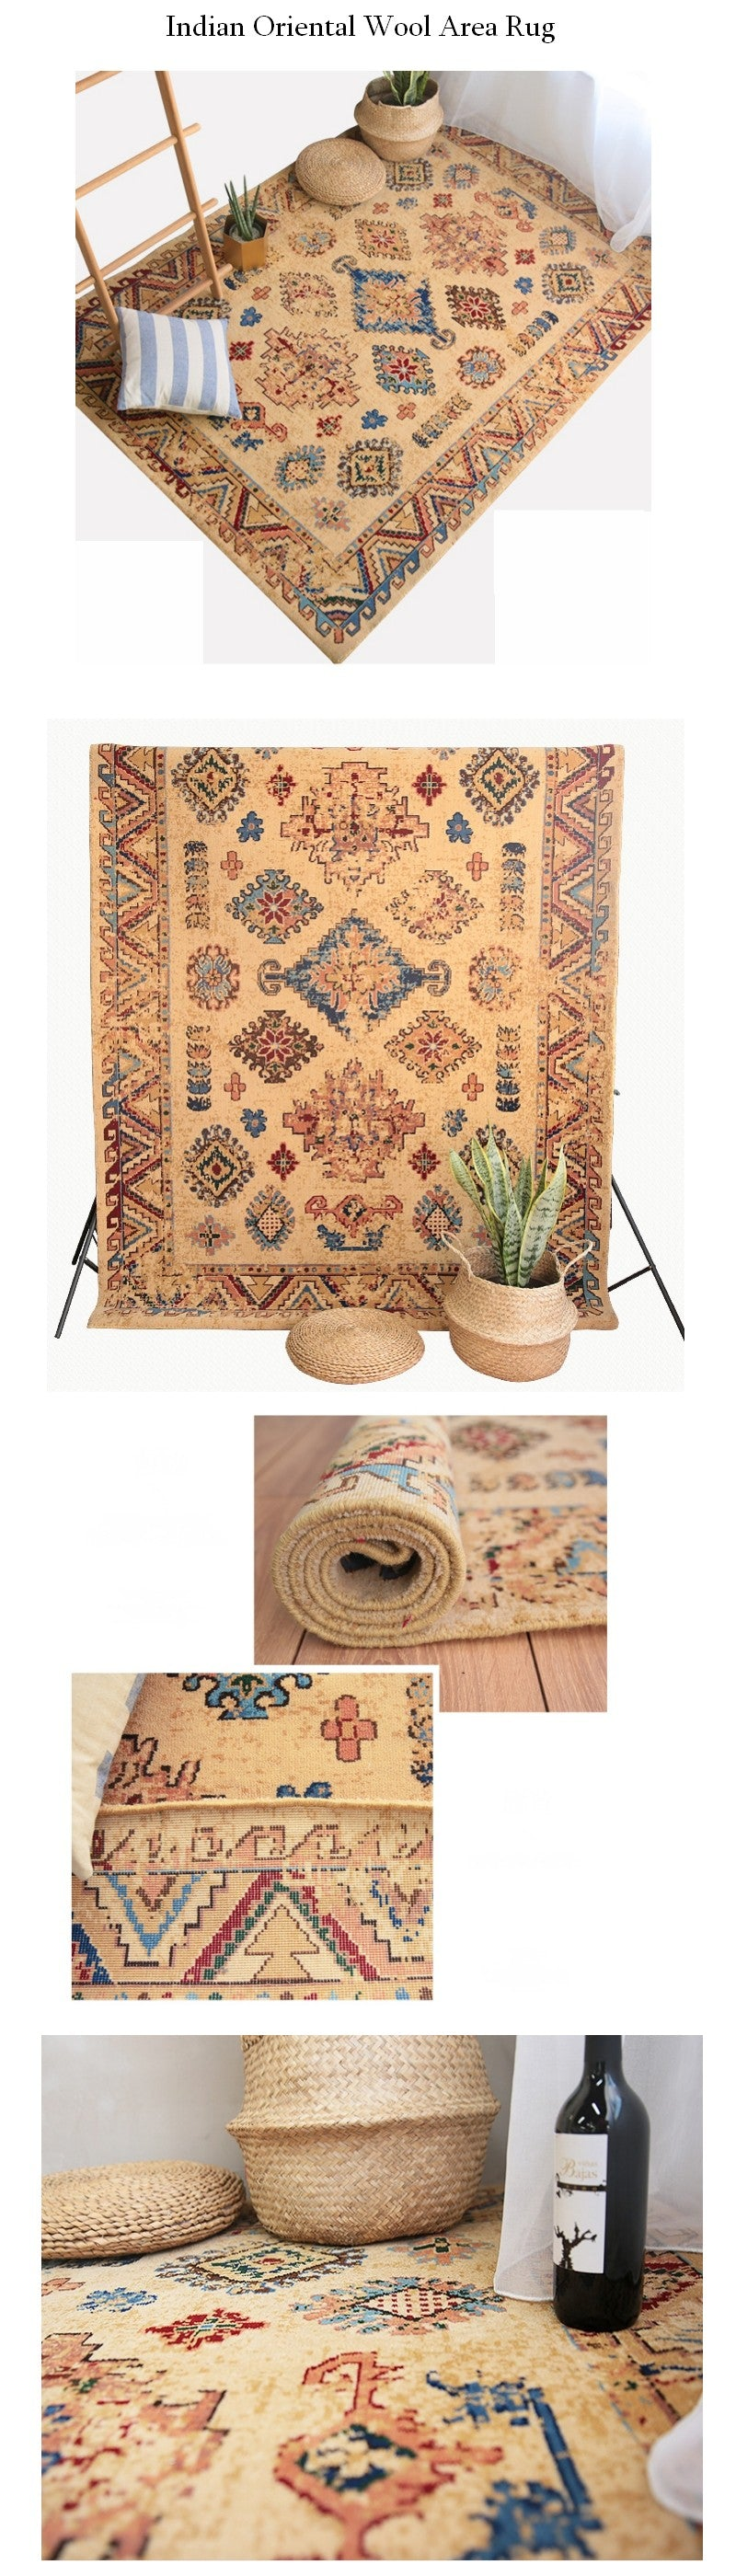 Indian Wool Woven Floor Carpet and Rugs, Bohemia Oriental Area Rug